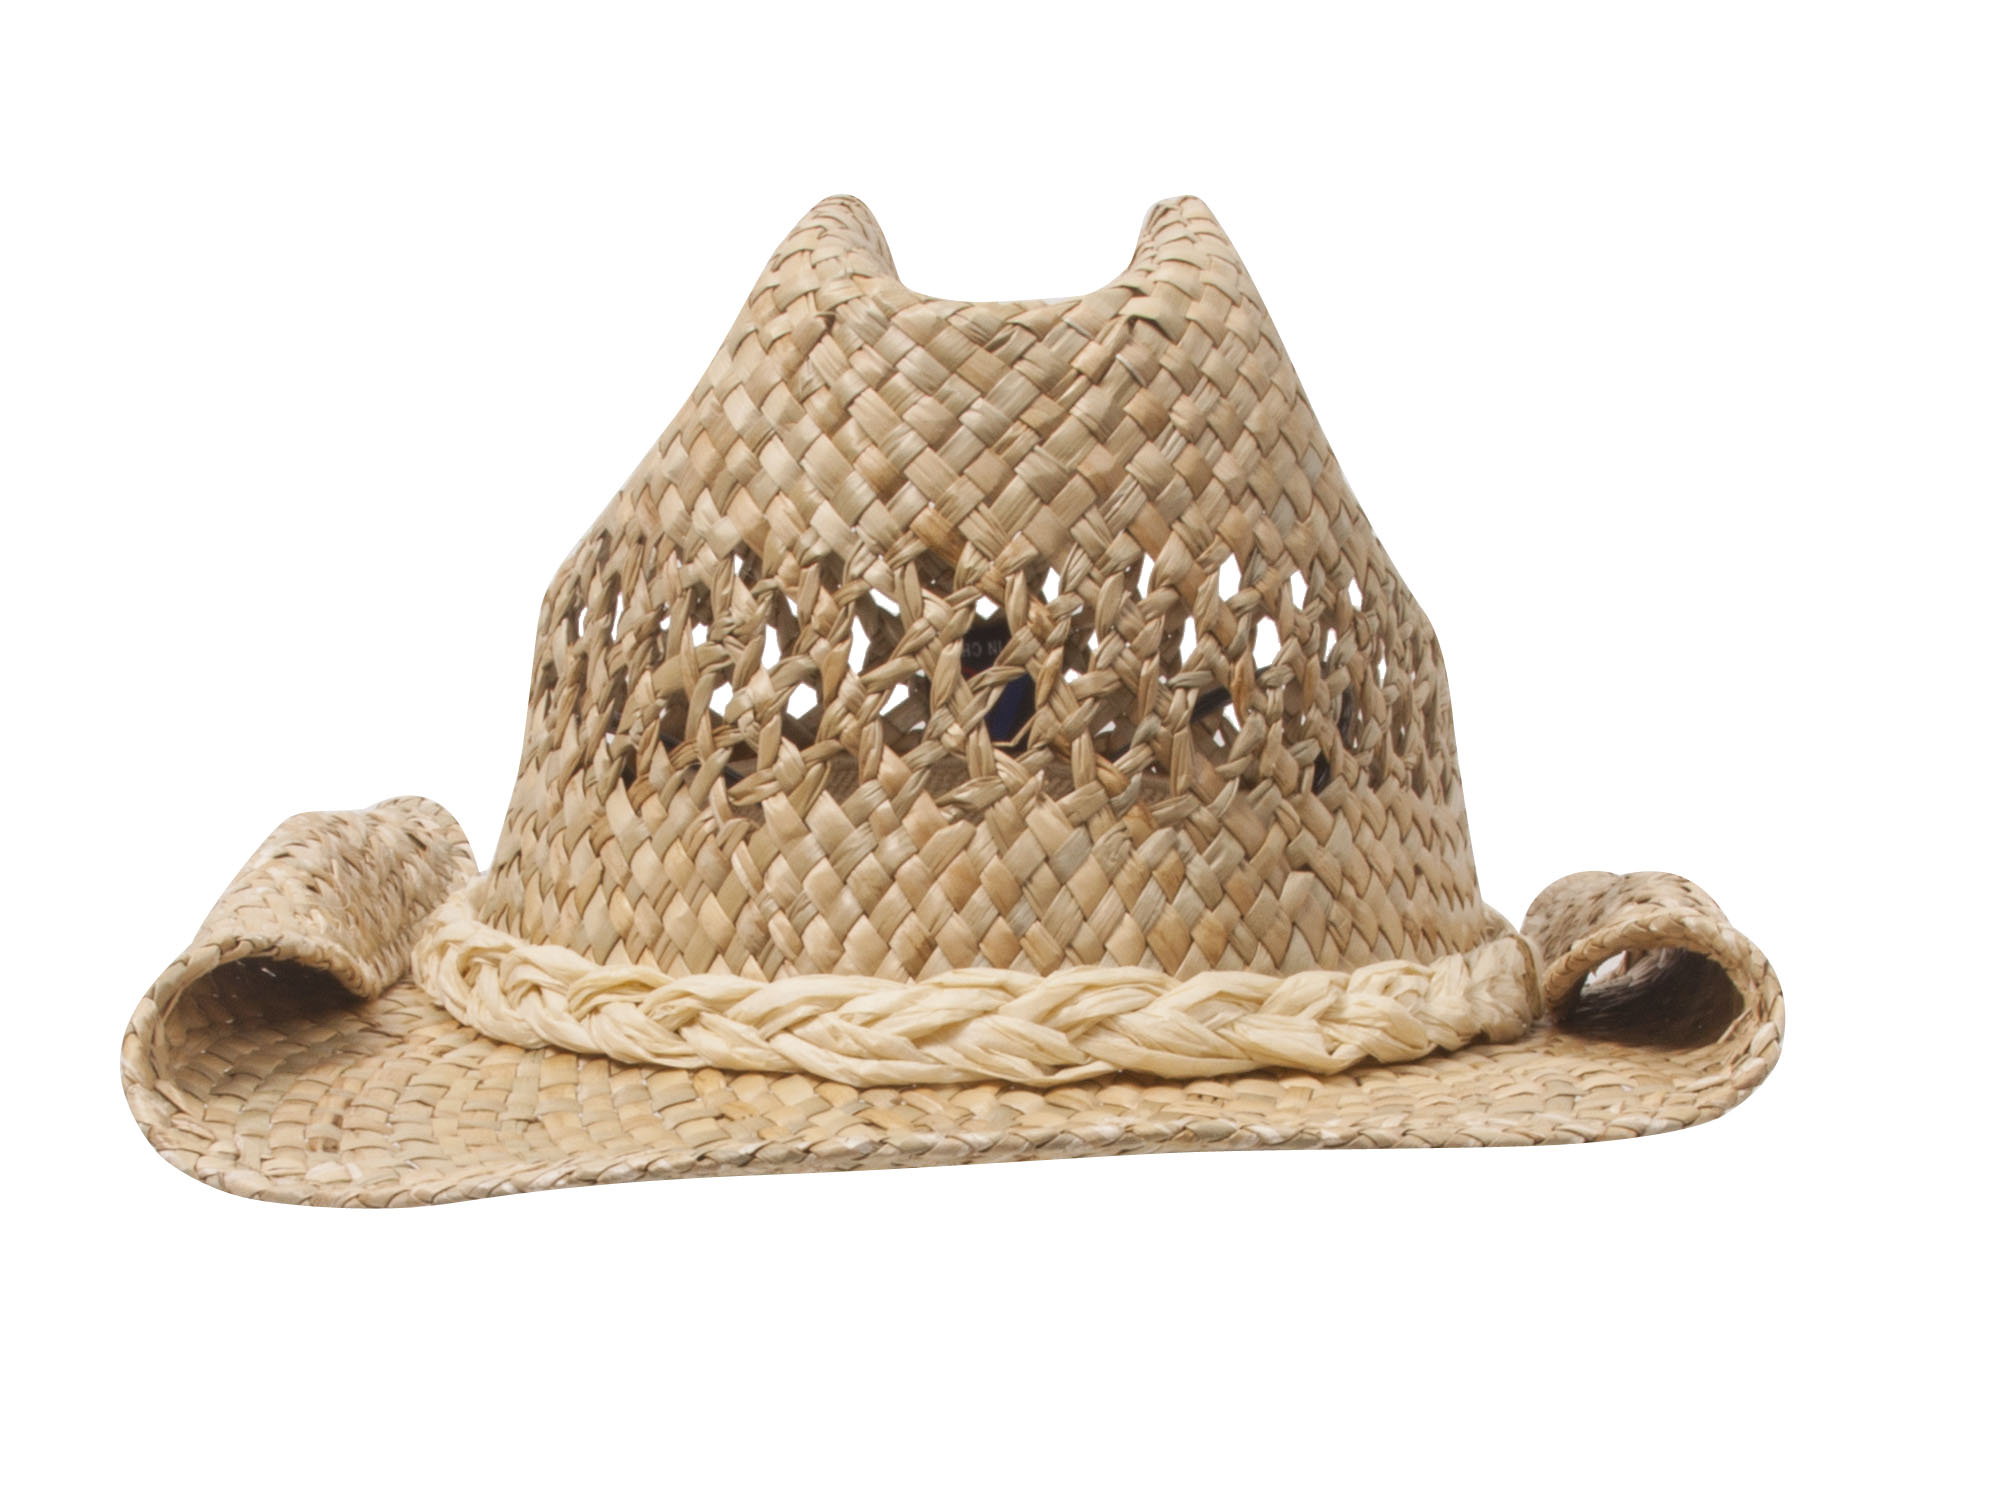 75787b9ecb3e6 Straw Cowboy Hat - Natural Roll 609595166773